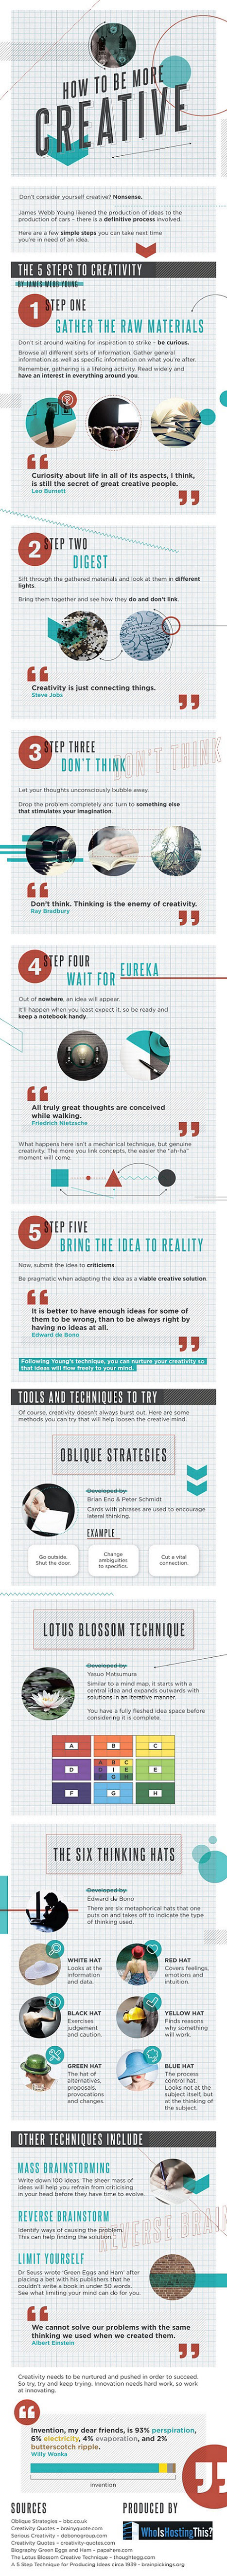 Boost Creativity-Infographic